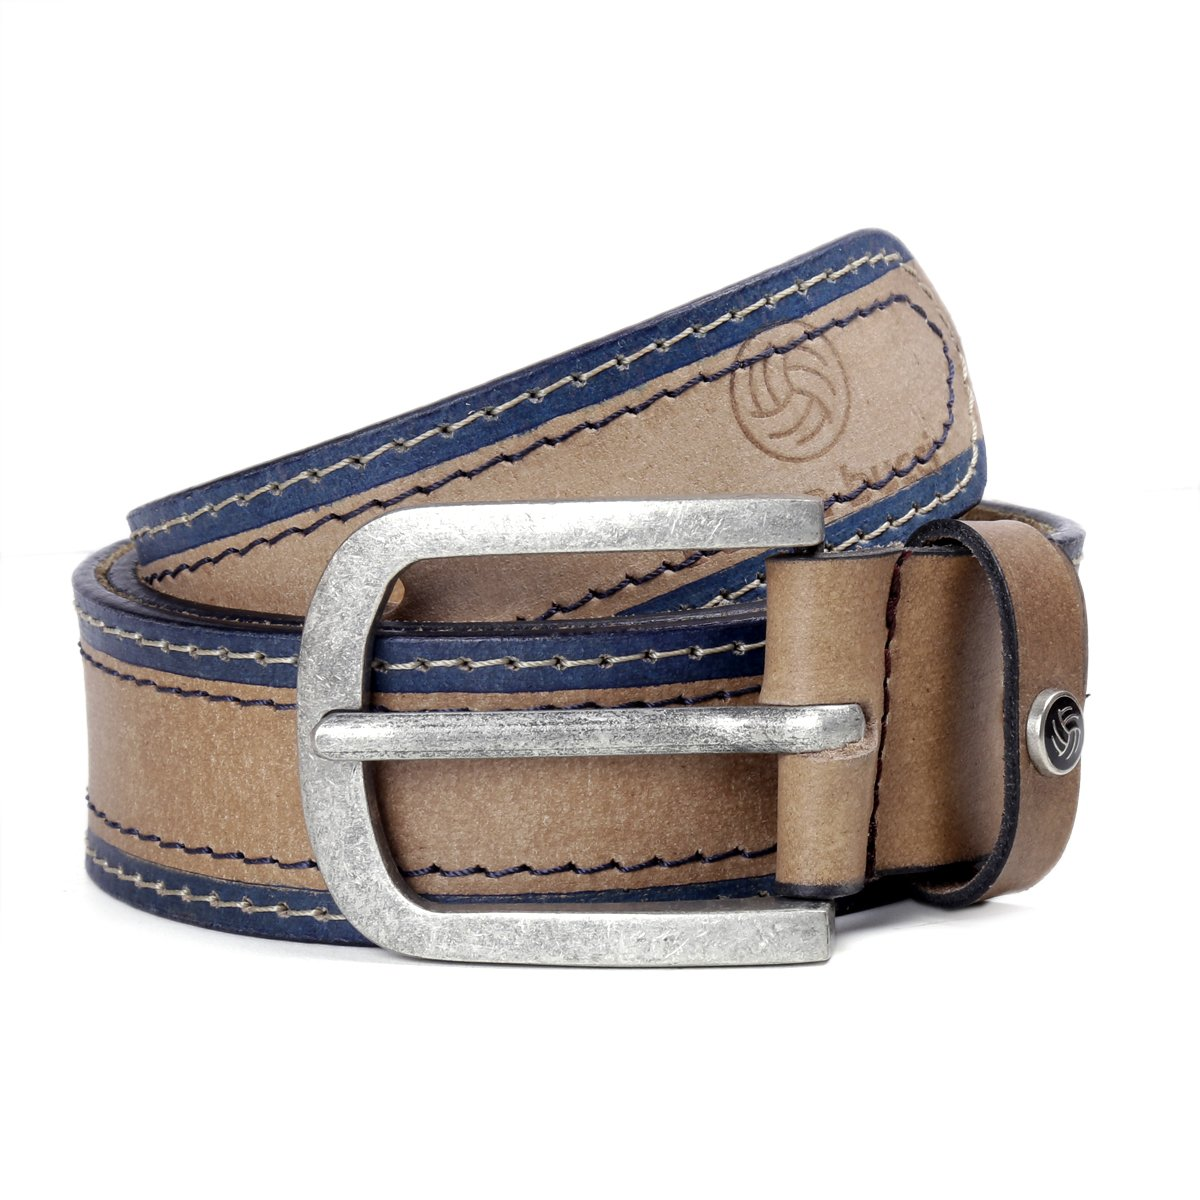 Bacca Bucci Men's Leather Belt, 100% Full Grain Leather With Anti Scratch Pin Buckle, Great For Jeans, Casual & work...